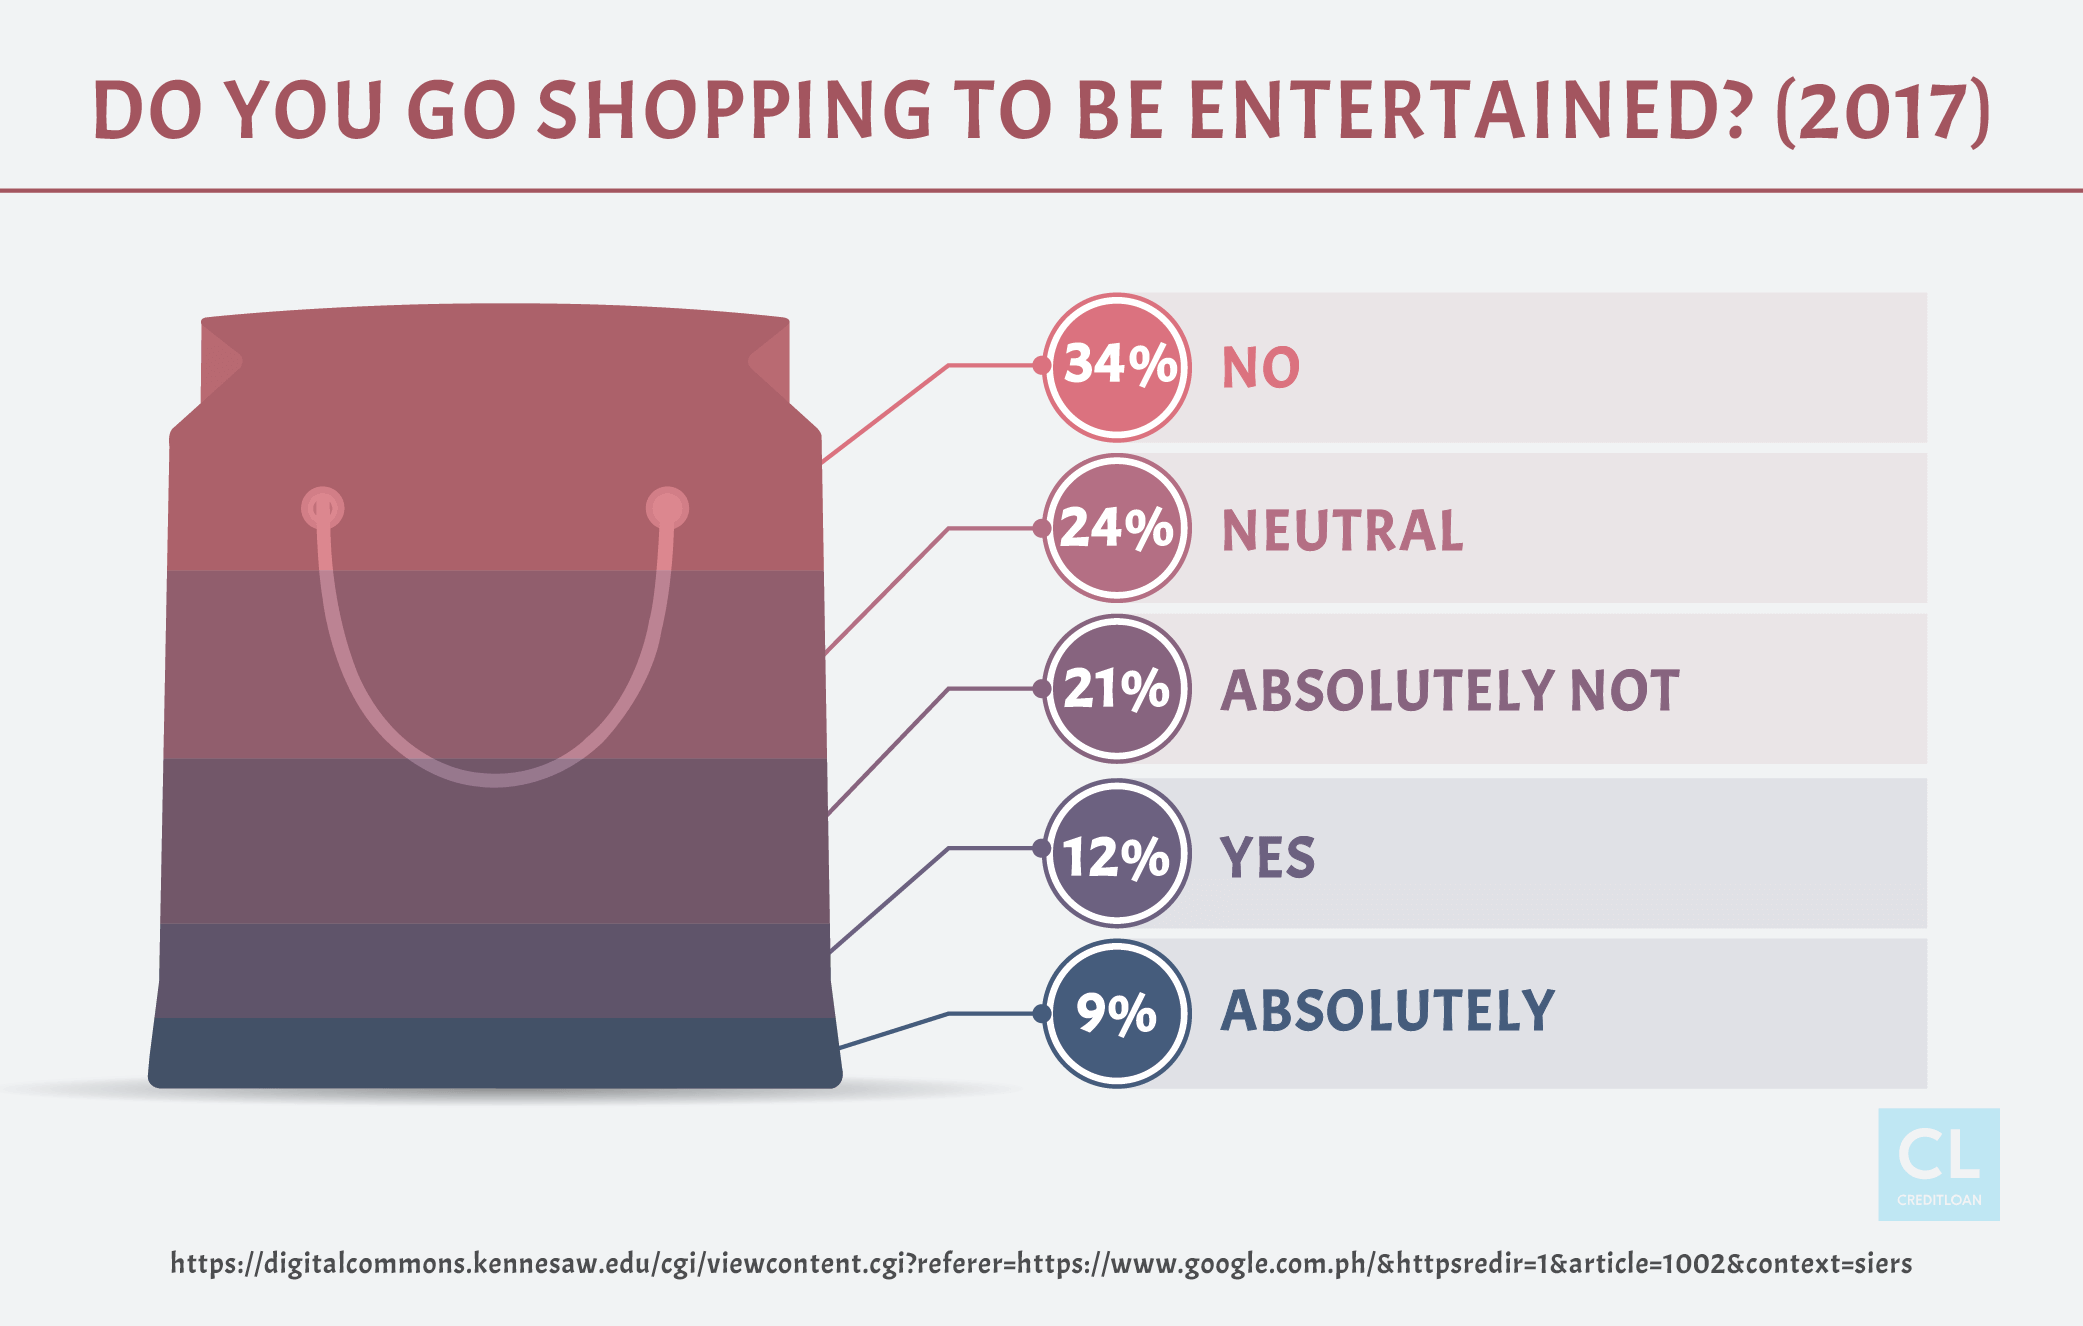 Survey: Do You Go Shopping To Be Entertained?